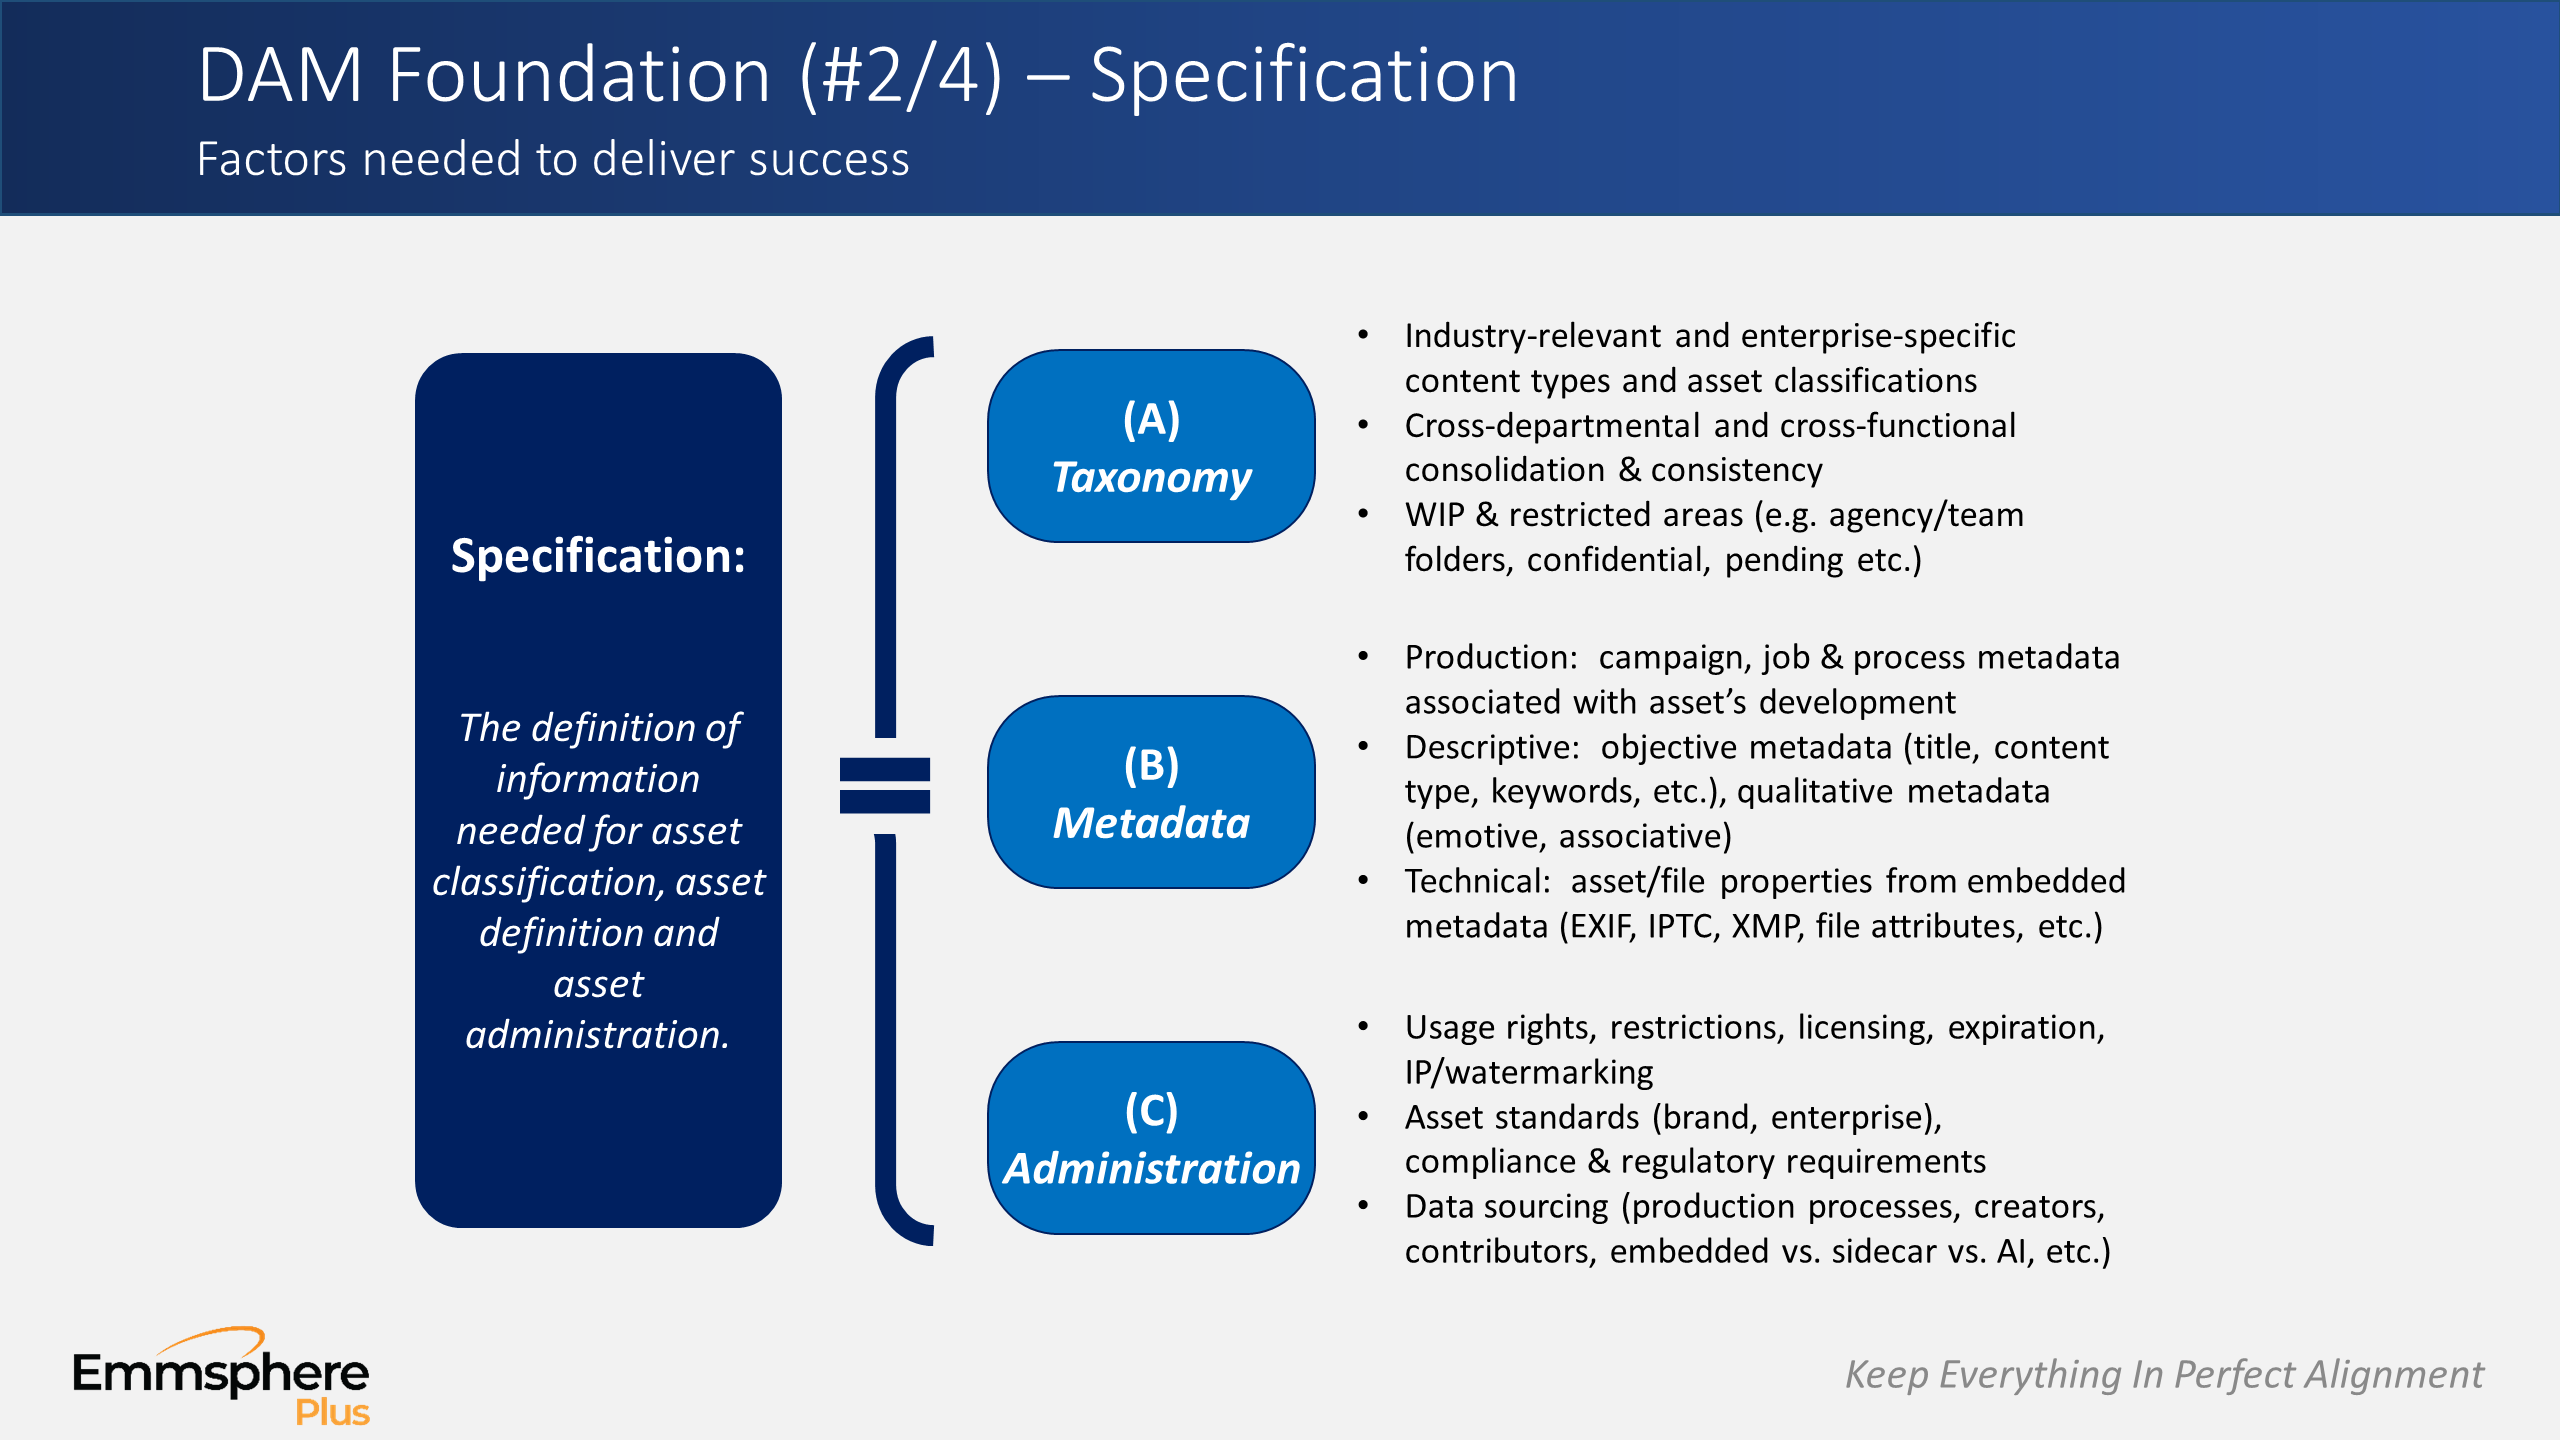 DAM Perspectives Part 4 – Specification